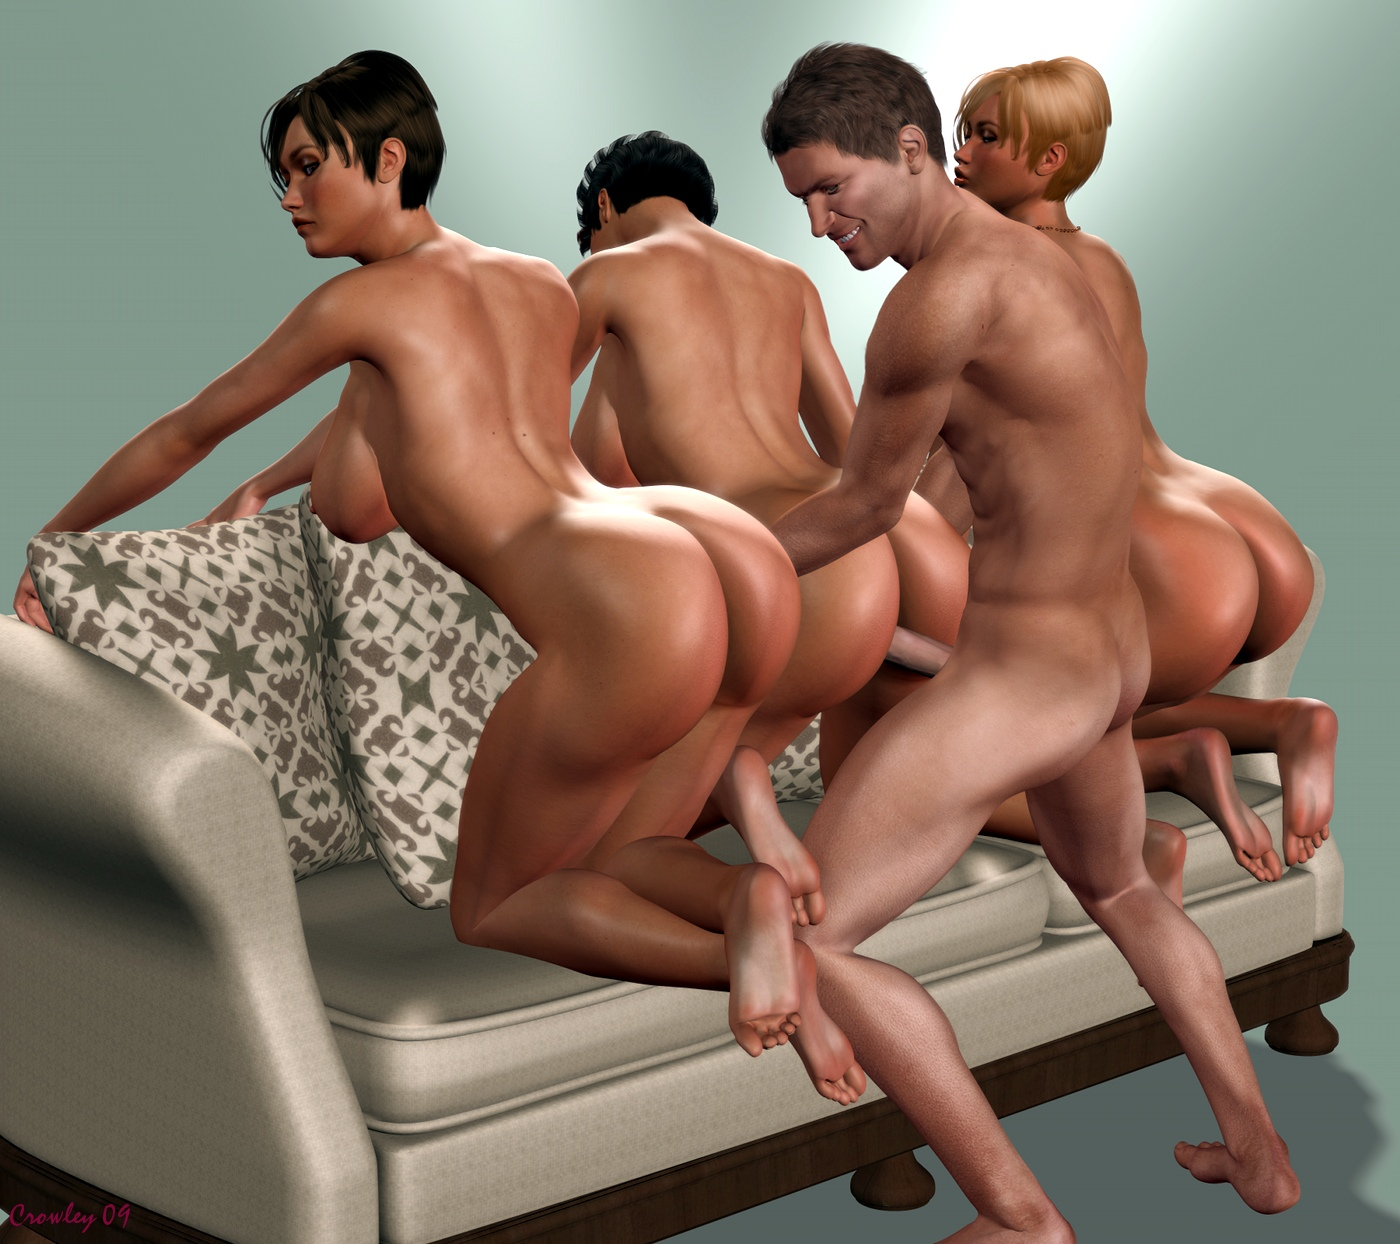 Porn picture 3d download sexual galleries